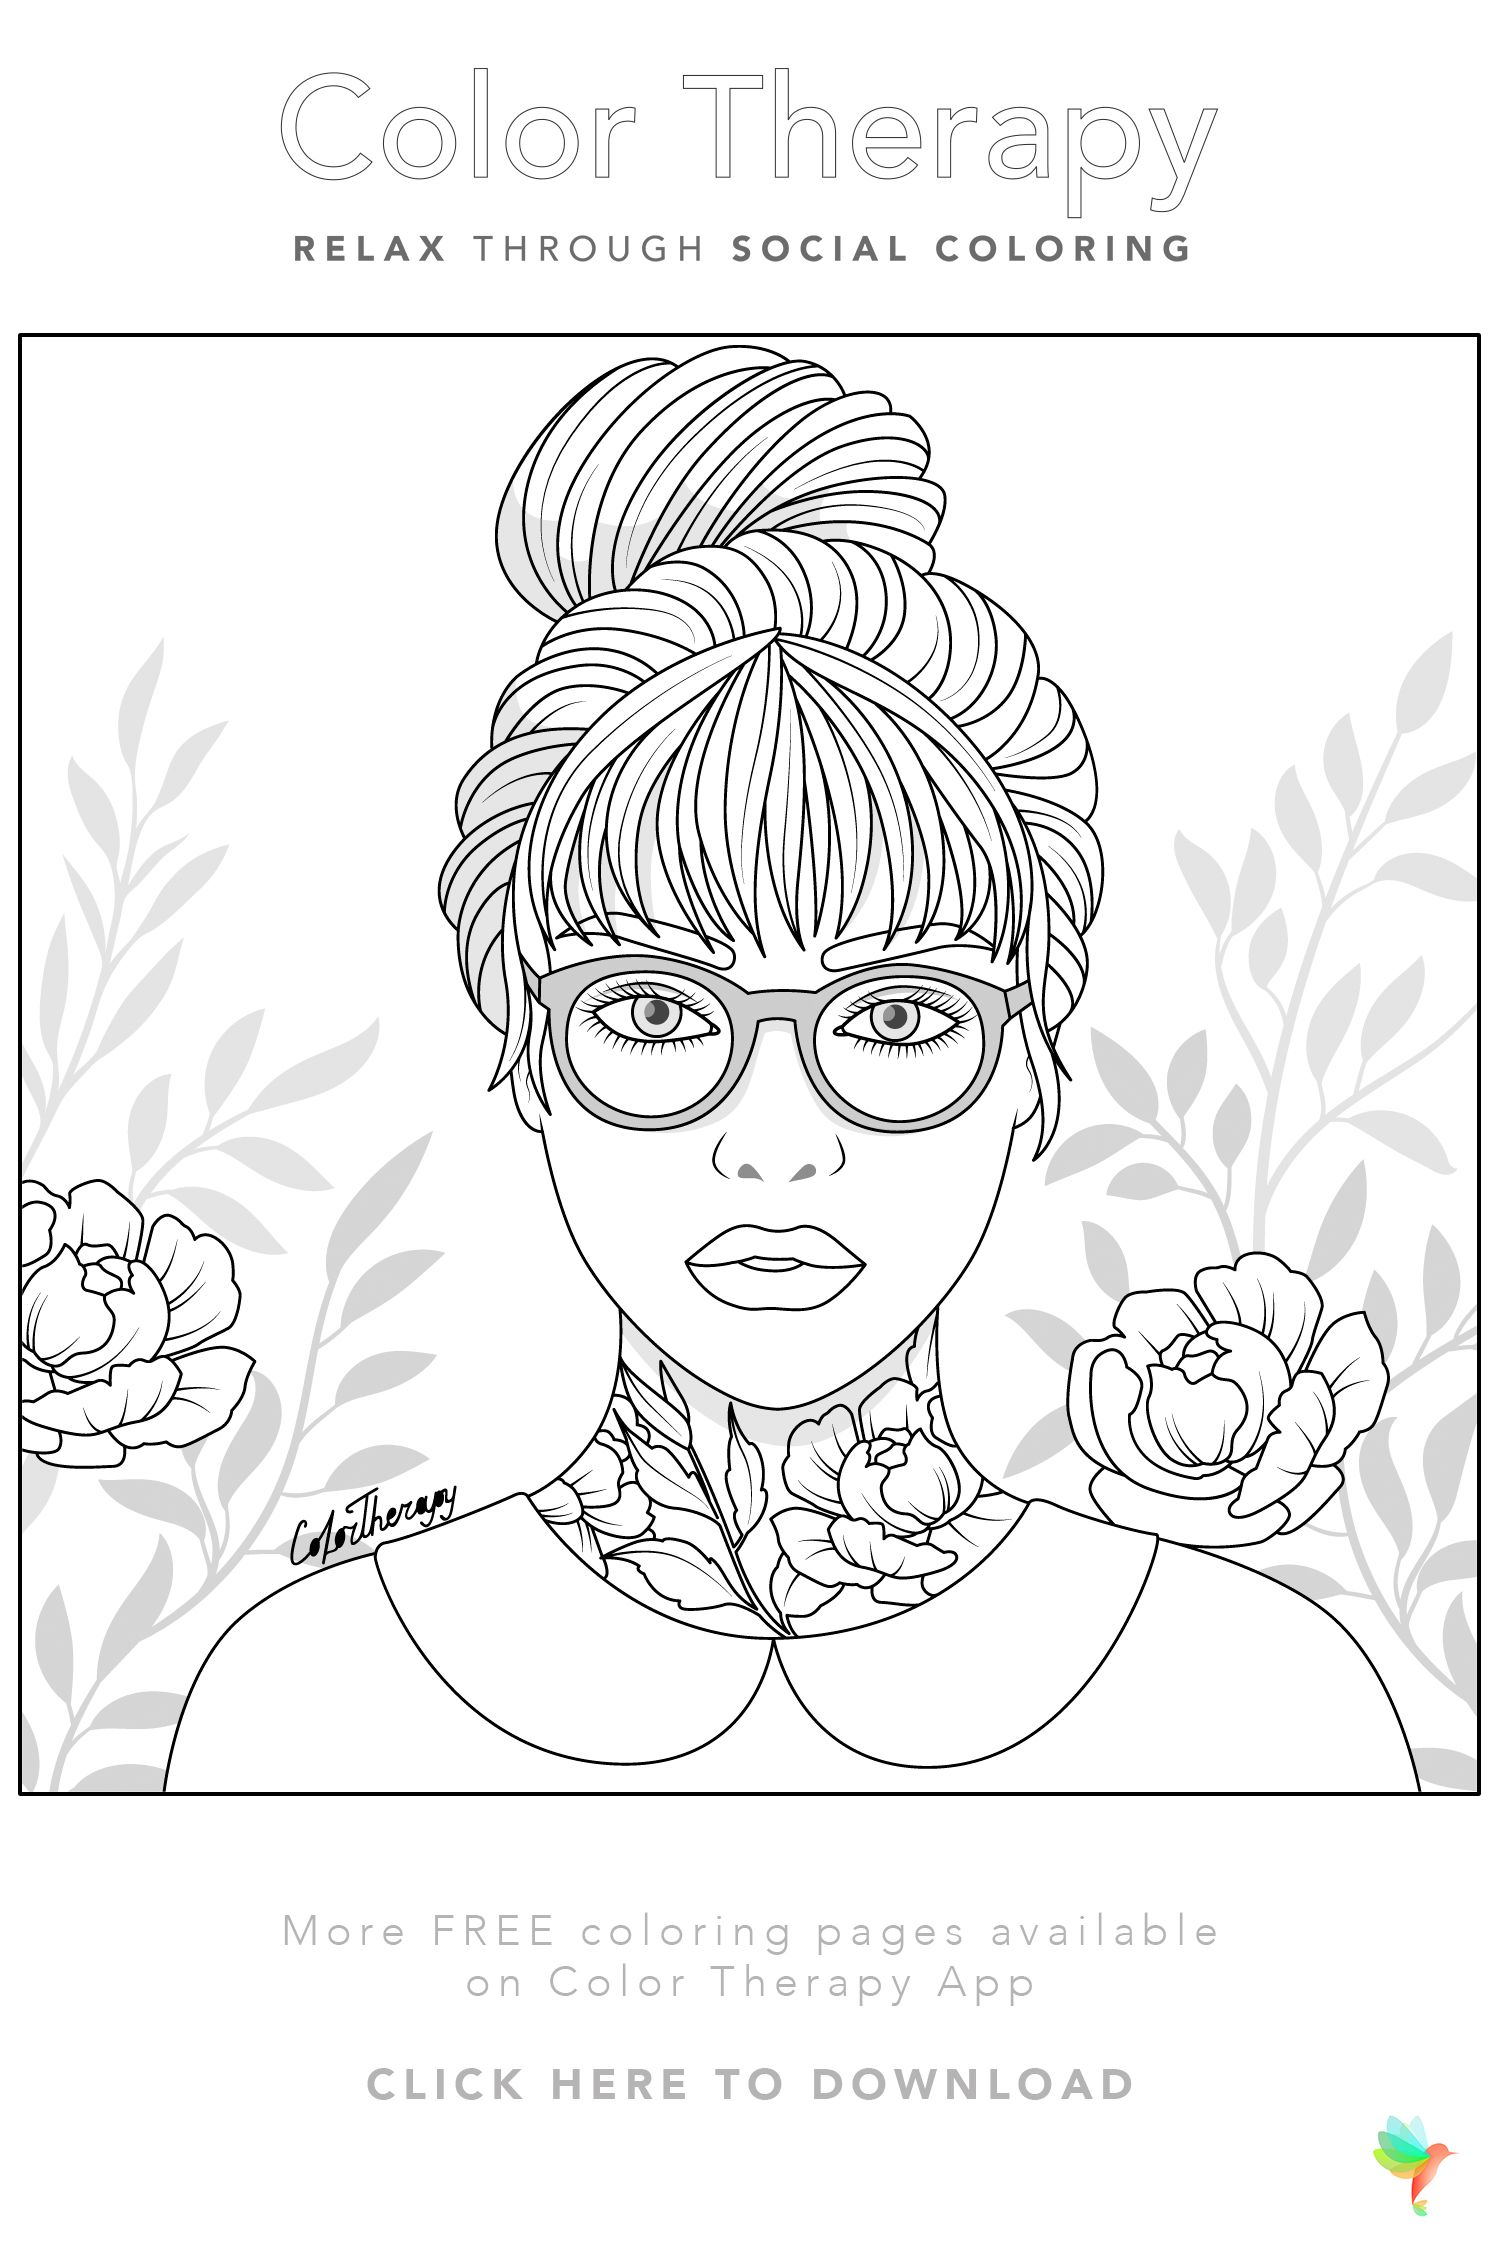 Color Therapy Gift Of The Day Free Coloring Template Coloring Books Cute Coloring Pages People Coloring Pages